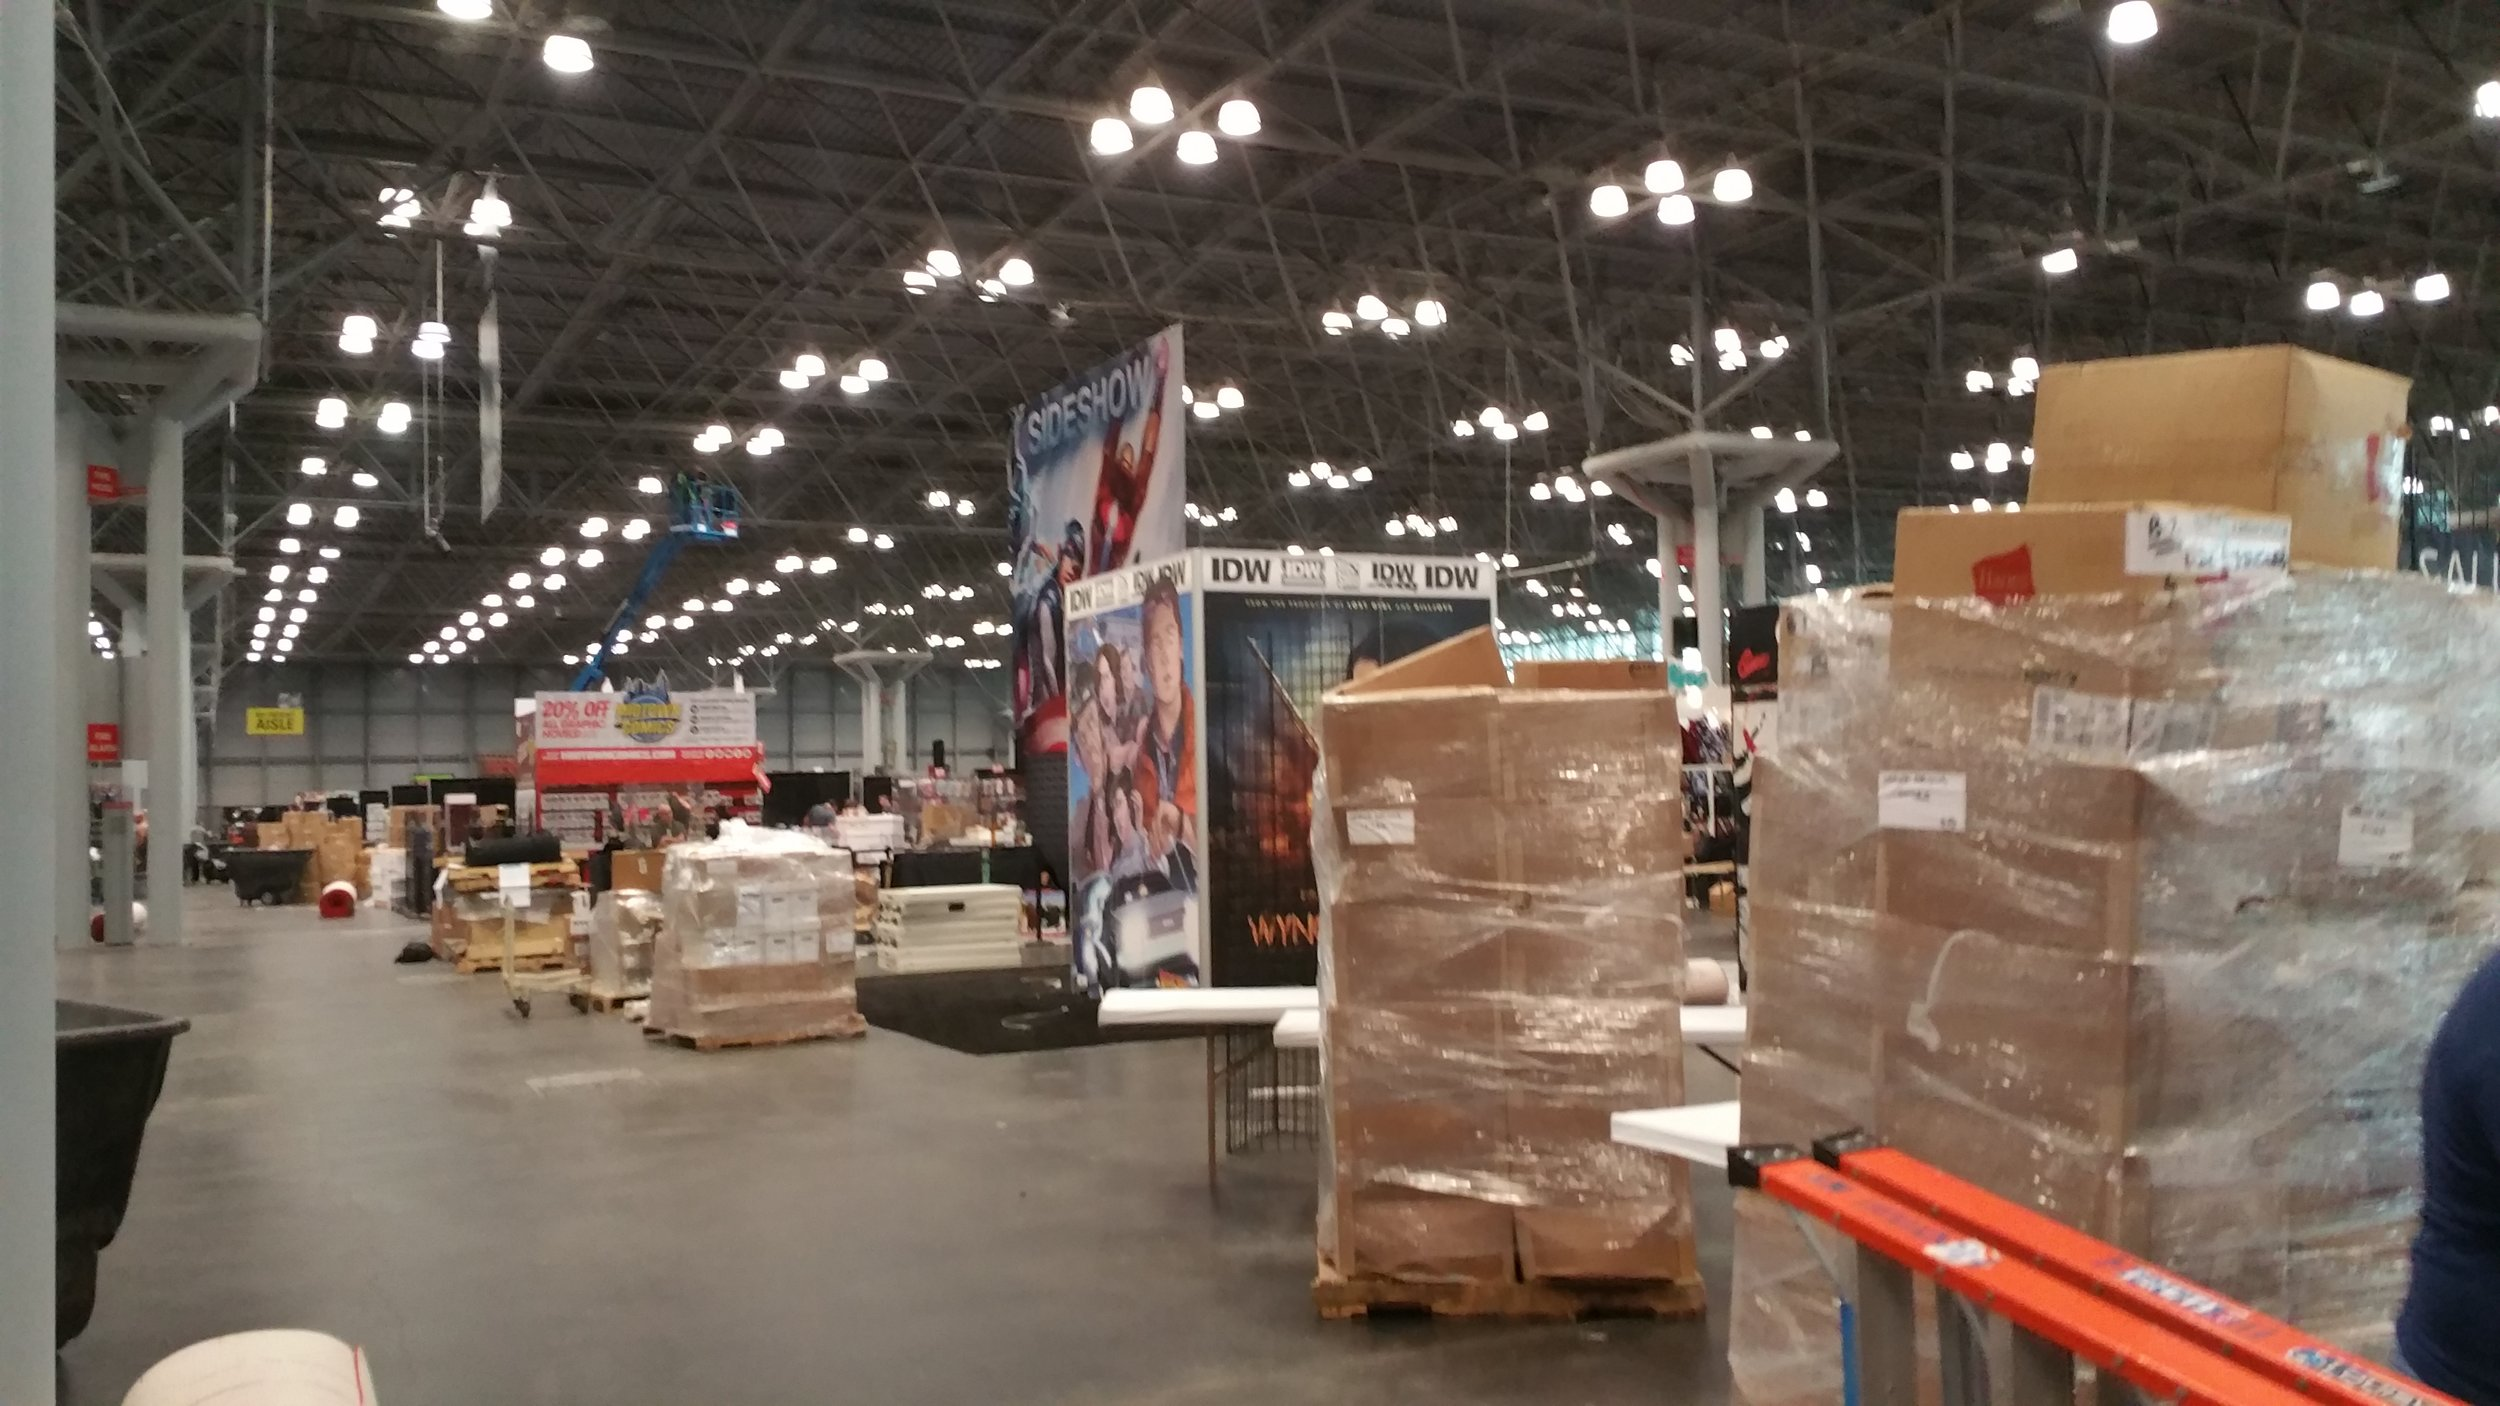 Booth materials loaded into place.